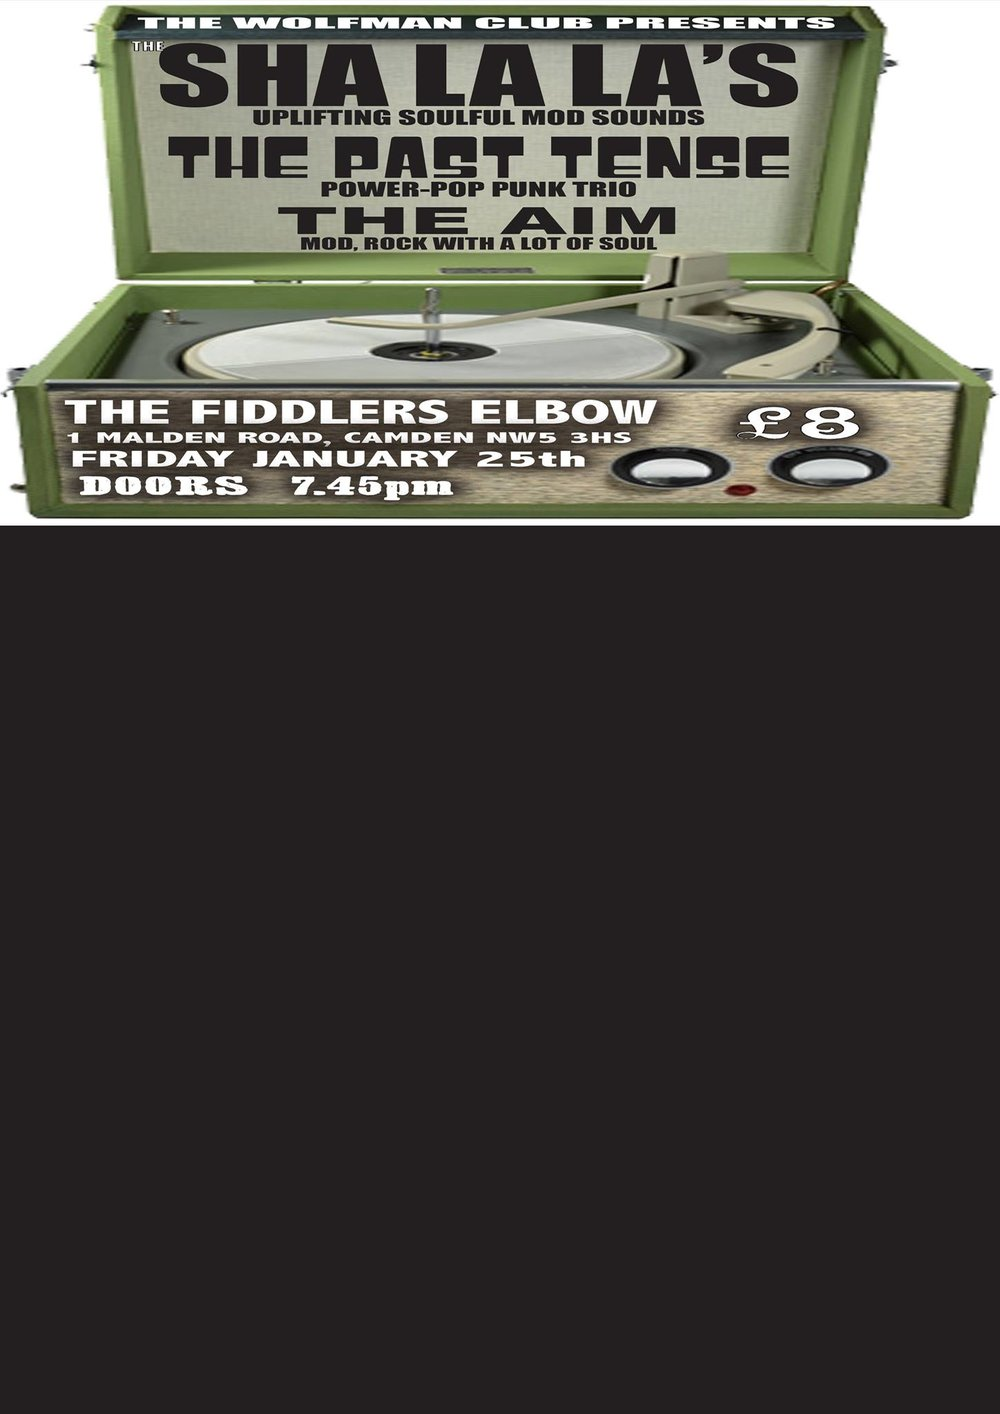 at The Fiddler's Elbow promotional image